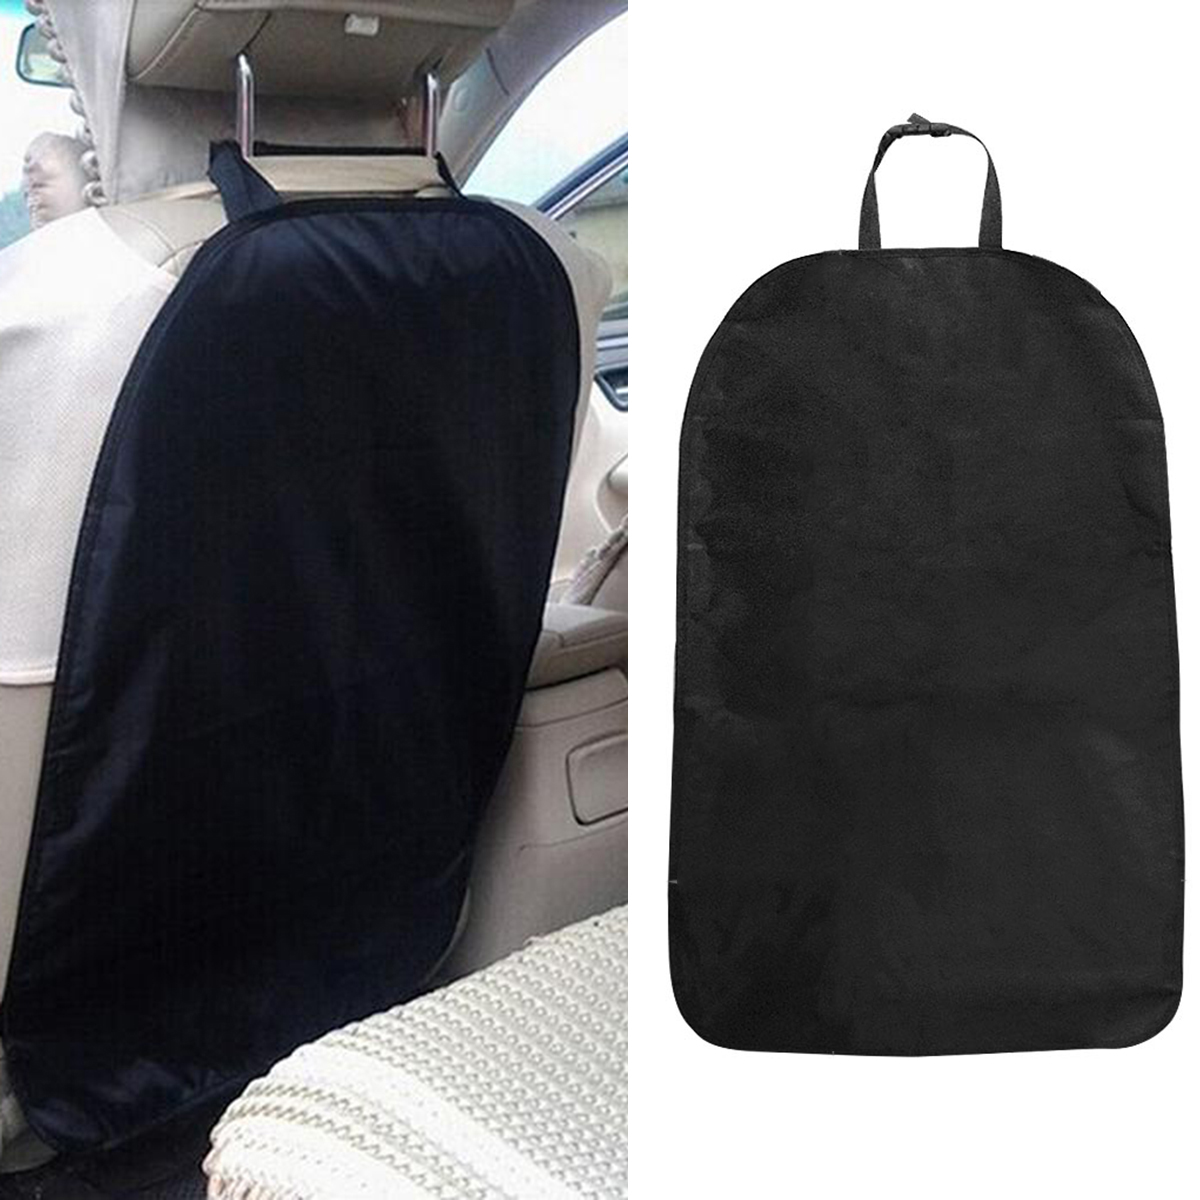 Hot Car Seat Back Cover Protect From Mud Dirt Protection From Children Baby Kicking Auto Seats Covers Protectors Oxford Cloth